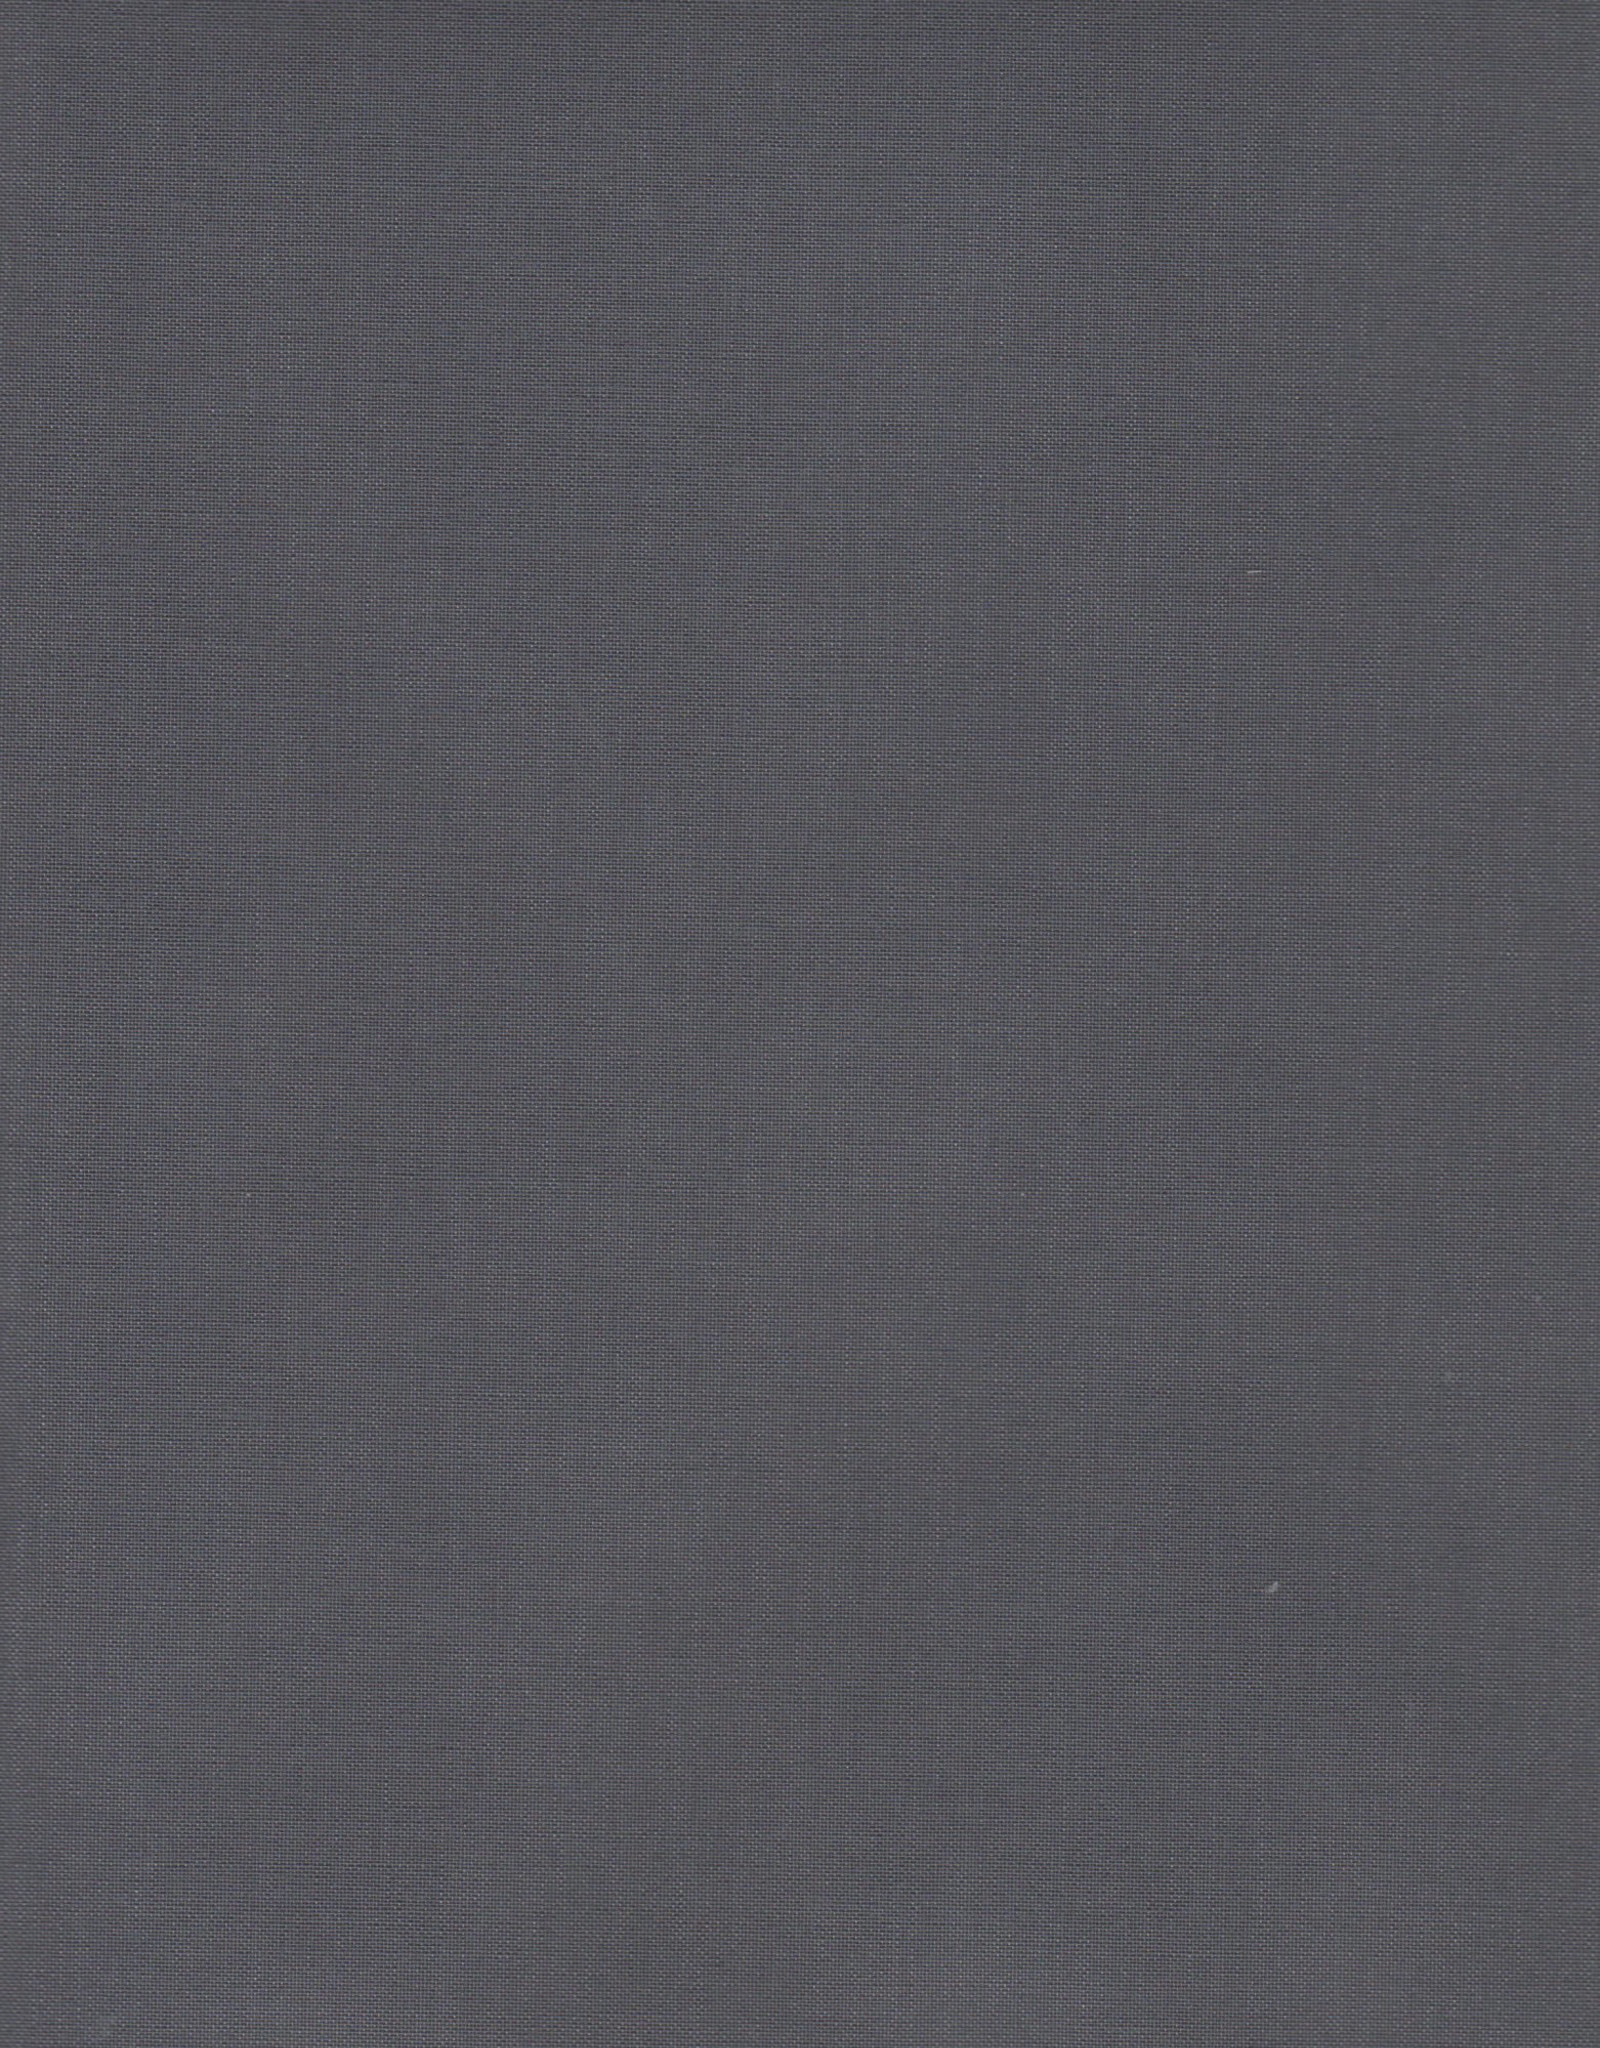 "Book Cloth Dark Gray, 17"" x 19"", 1 Sheet, Acid-Free, 100% Rayon, Paper Backed"